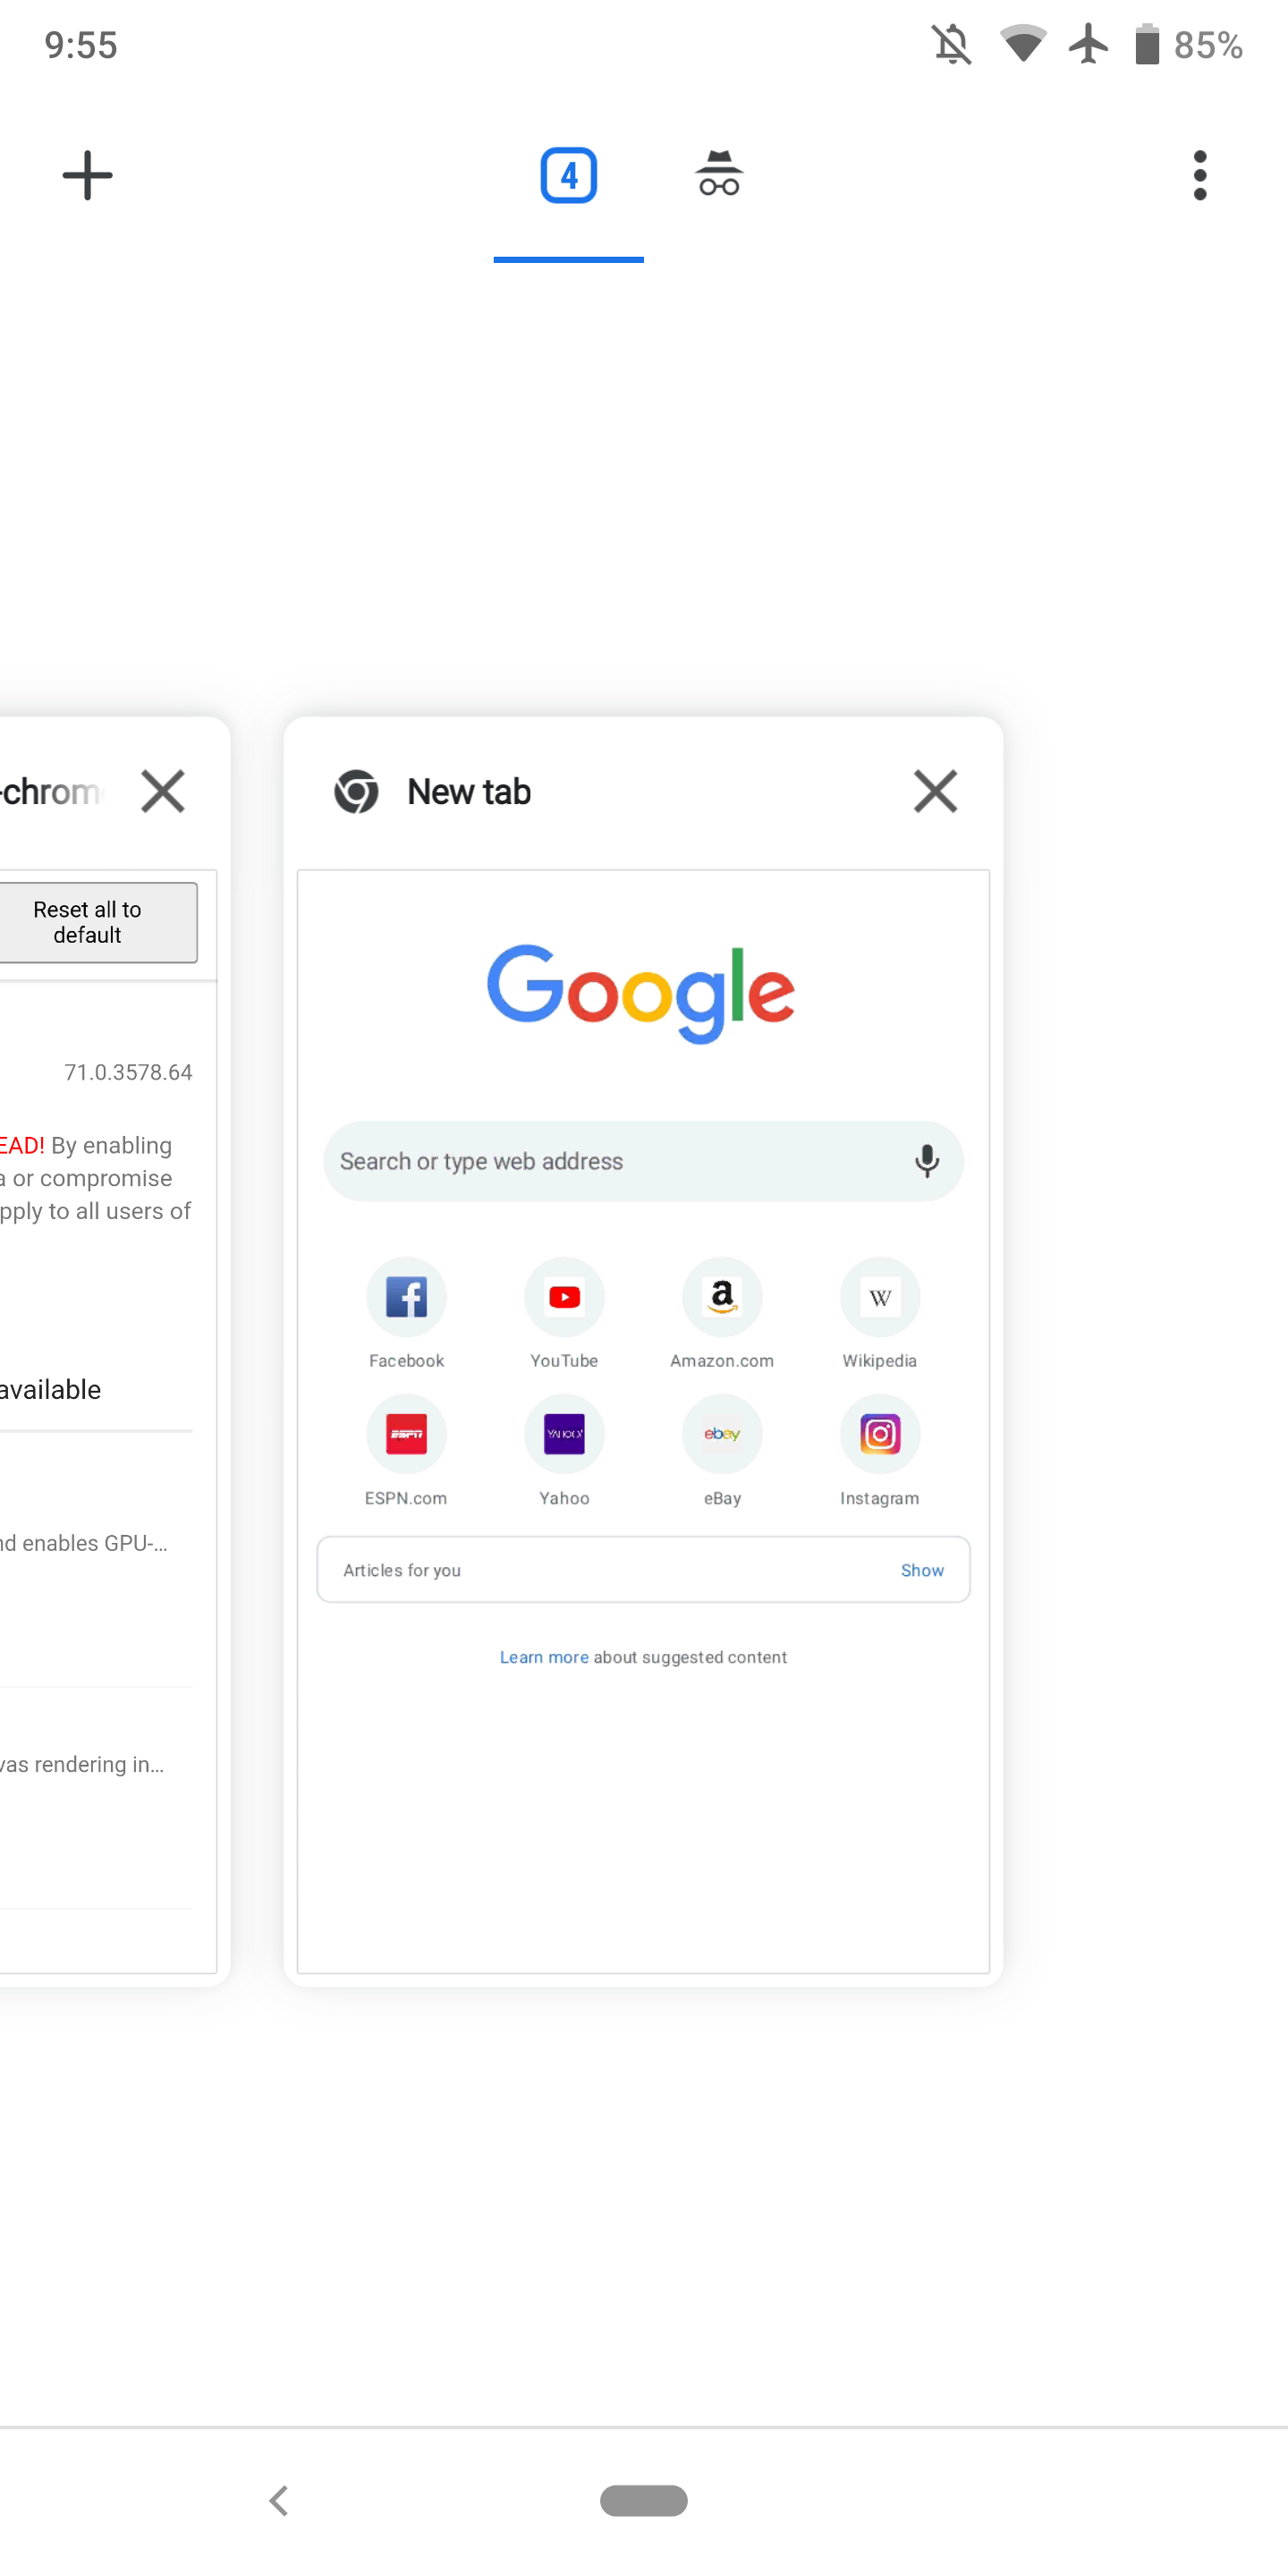 Chrome 71 for Android rolling out w/ settings tweaks, billing